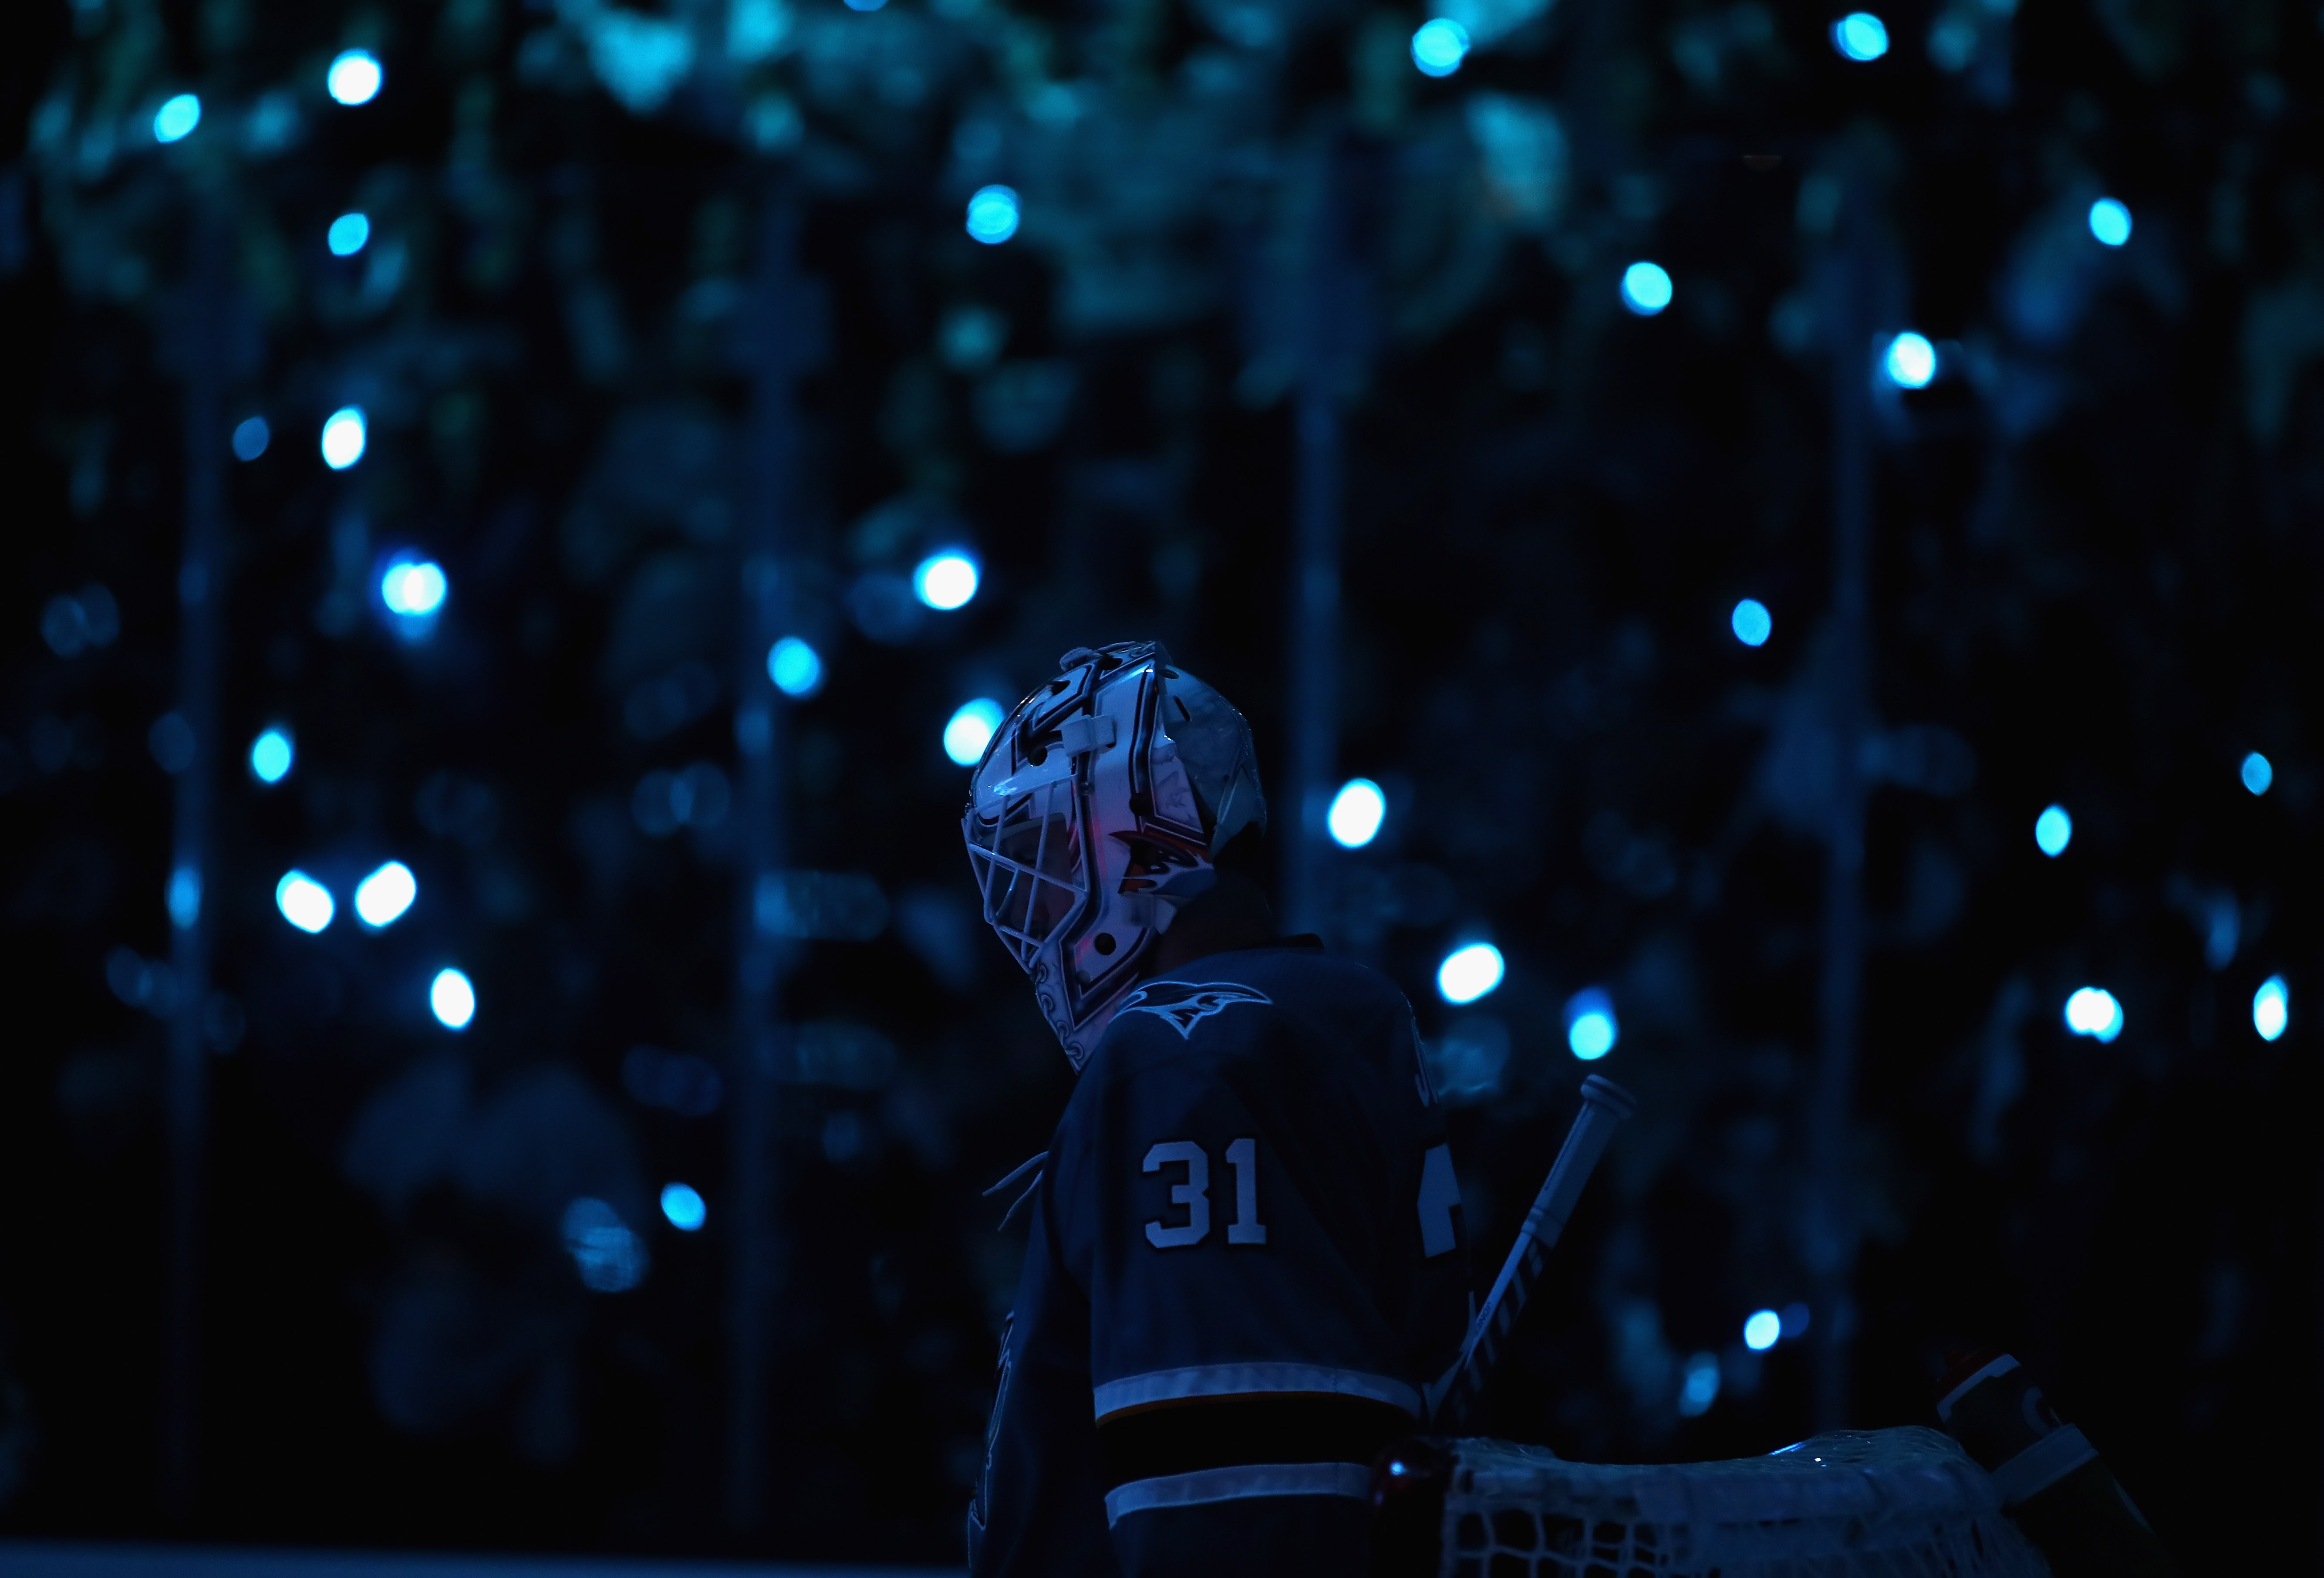 SAN JOSE, CA - APRIL 30: Martin Jones #31 of the San Jose Sharks stands in goal before their game against the Vegas Golden Knights in Game Three of the Western Conference Second Round during the 2018 NHL Stanley Cup Playoffs at SAP Center on April 30, 201